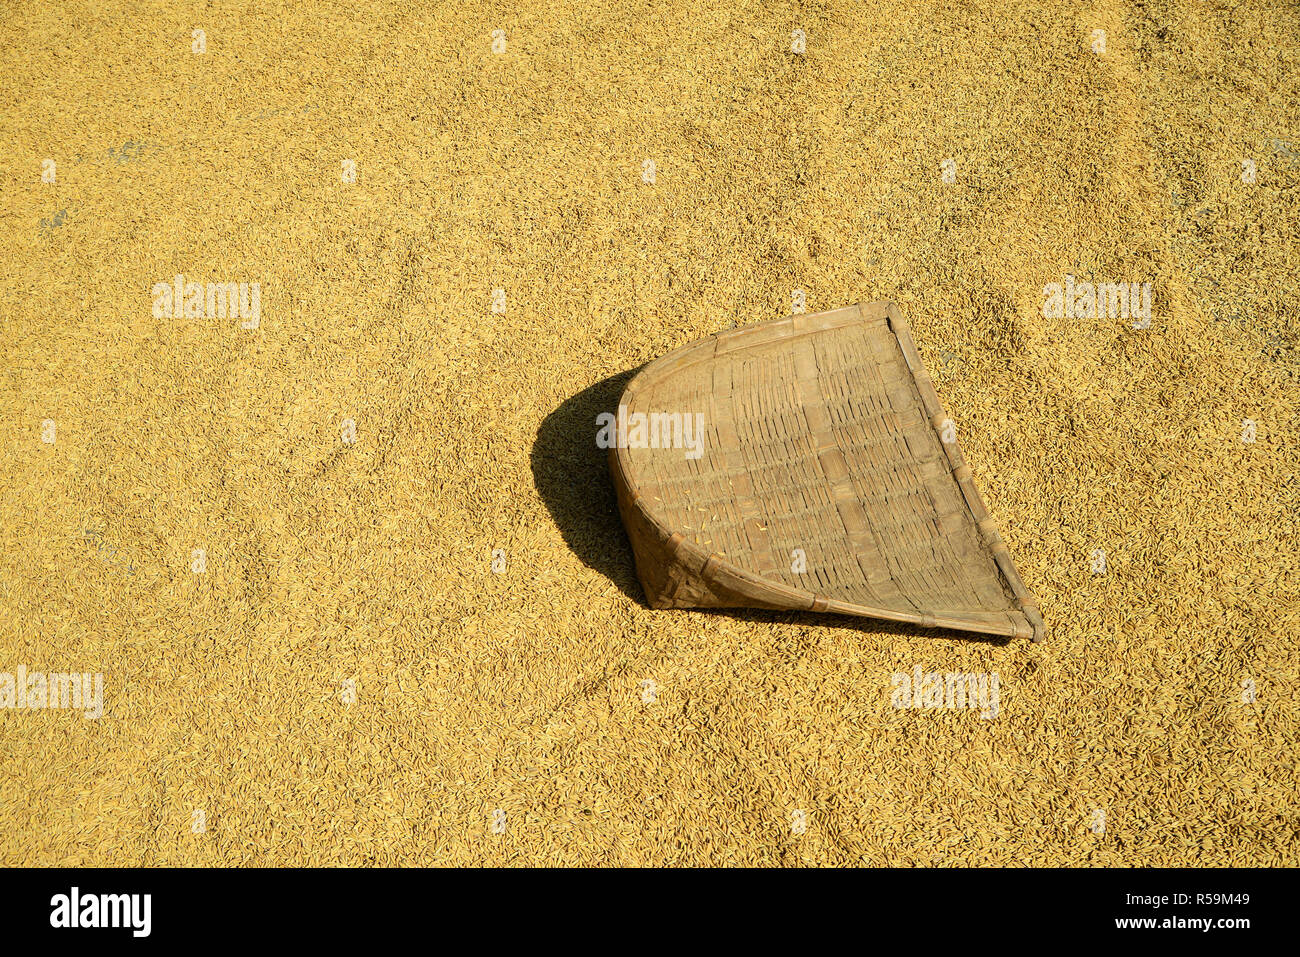 Paddy rice seed - Stock Image